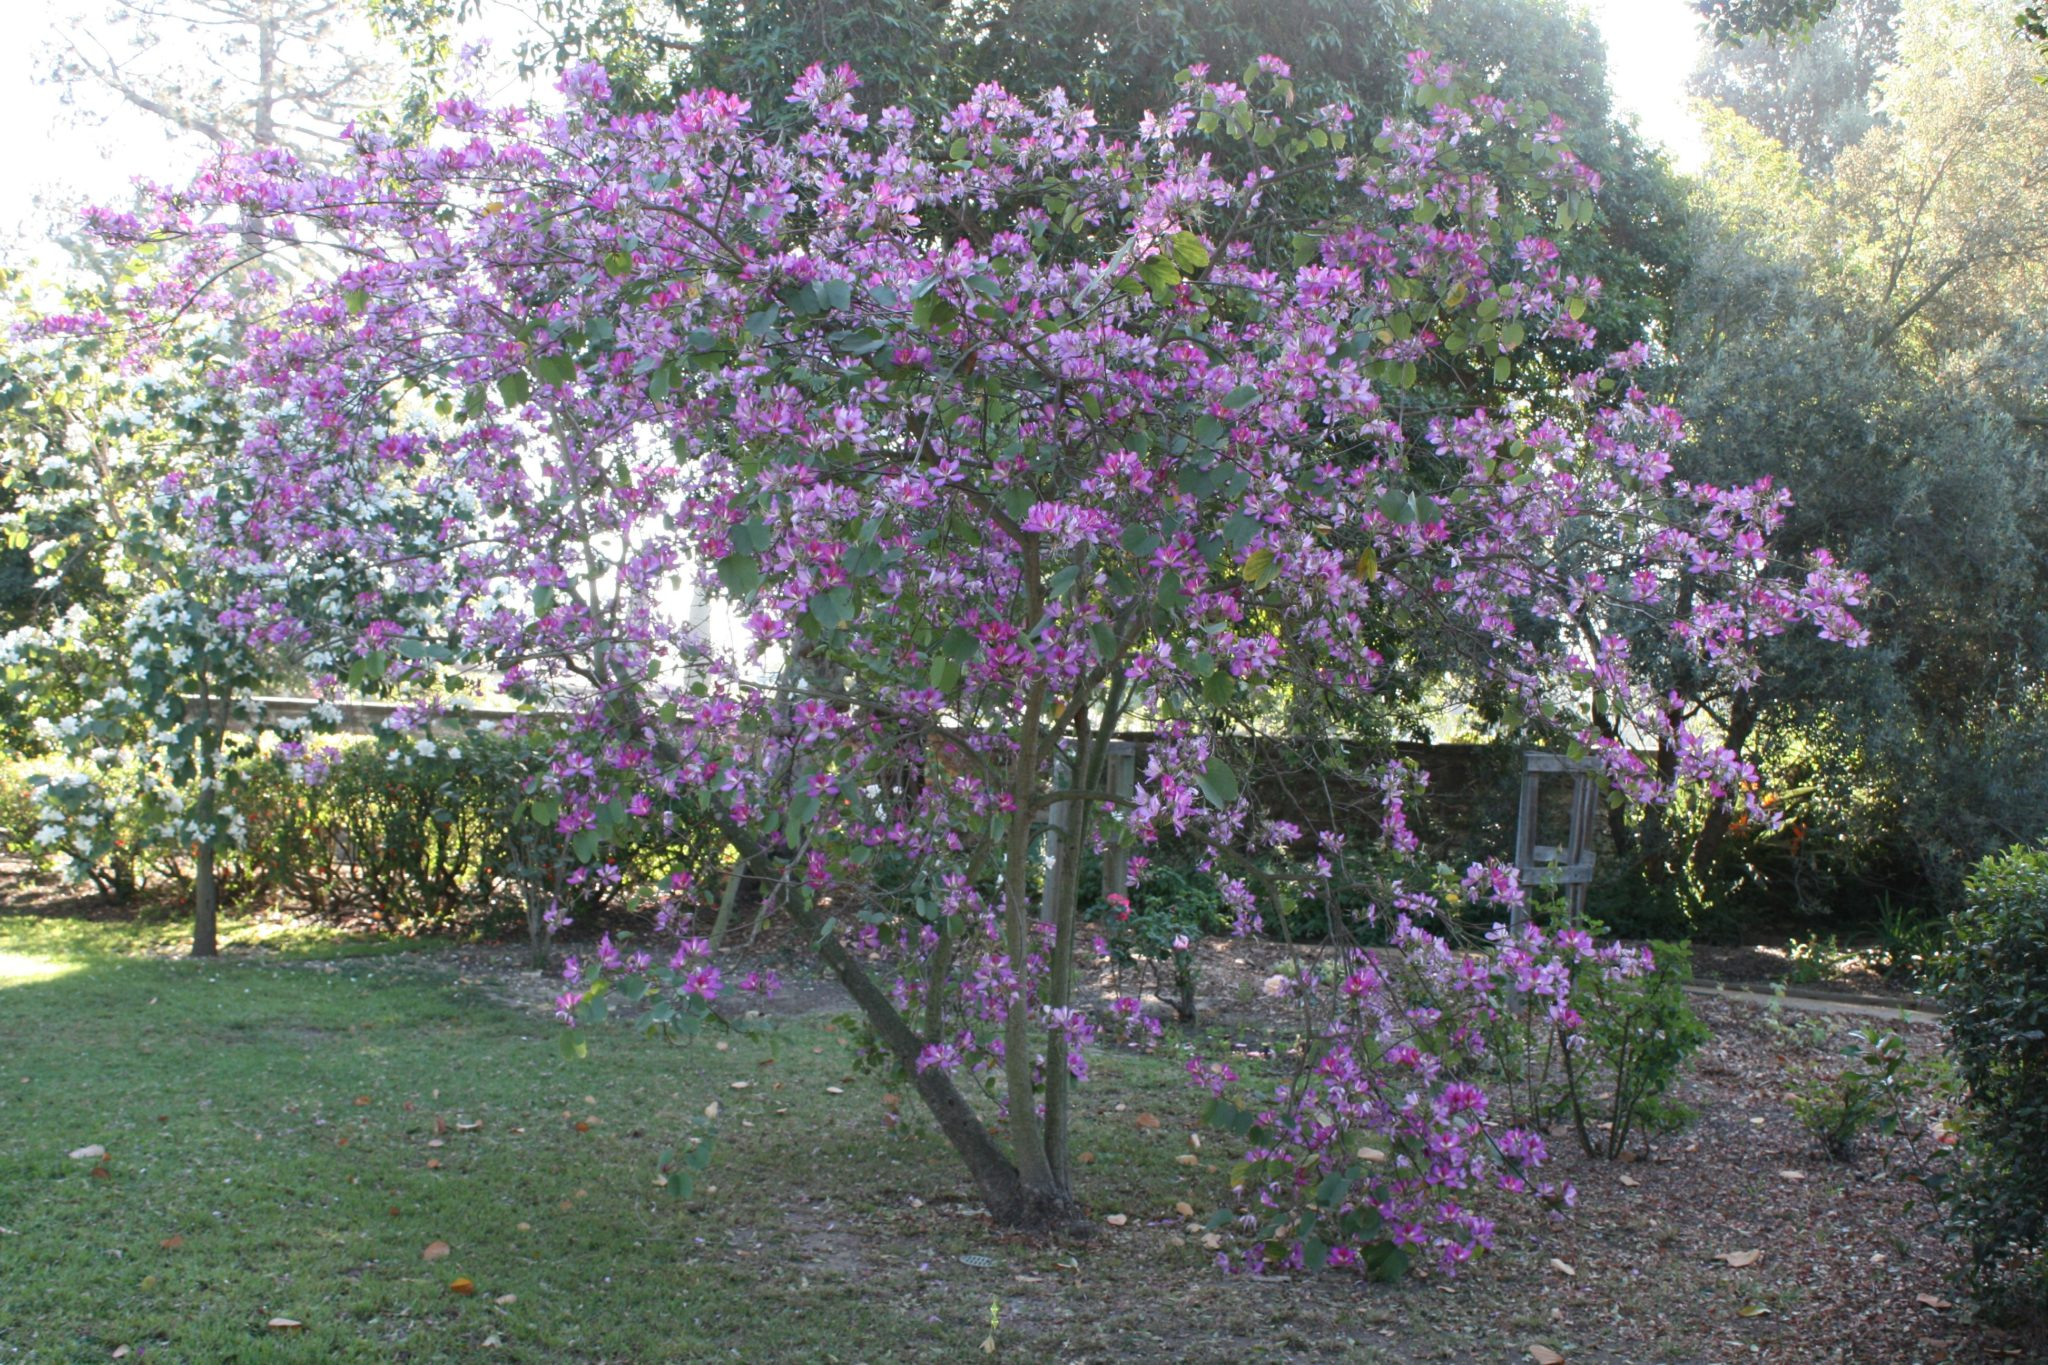 Bauhinia variegata - Purple Orchid Tree